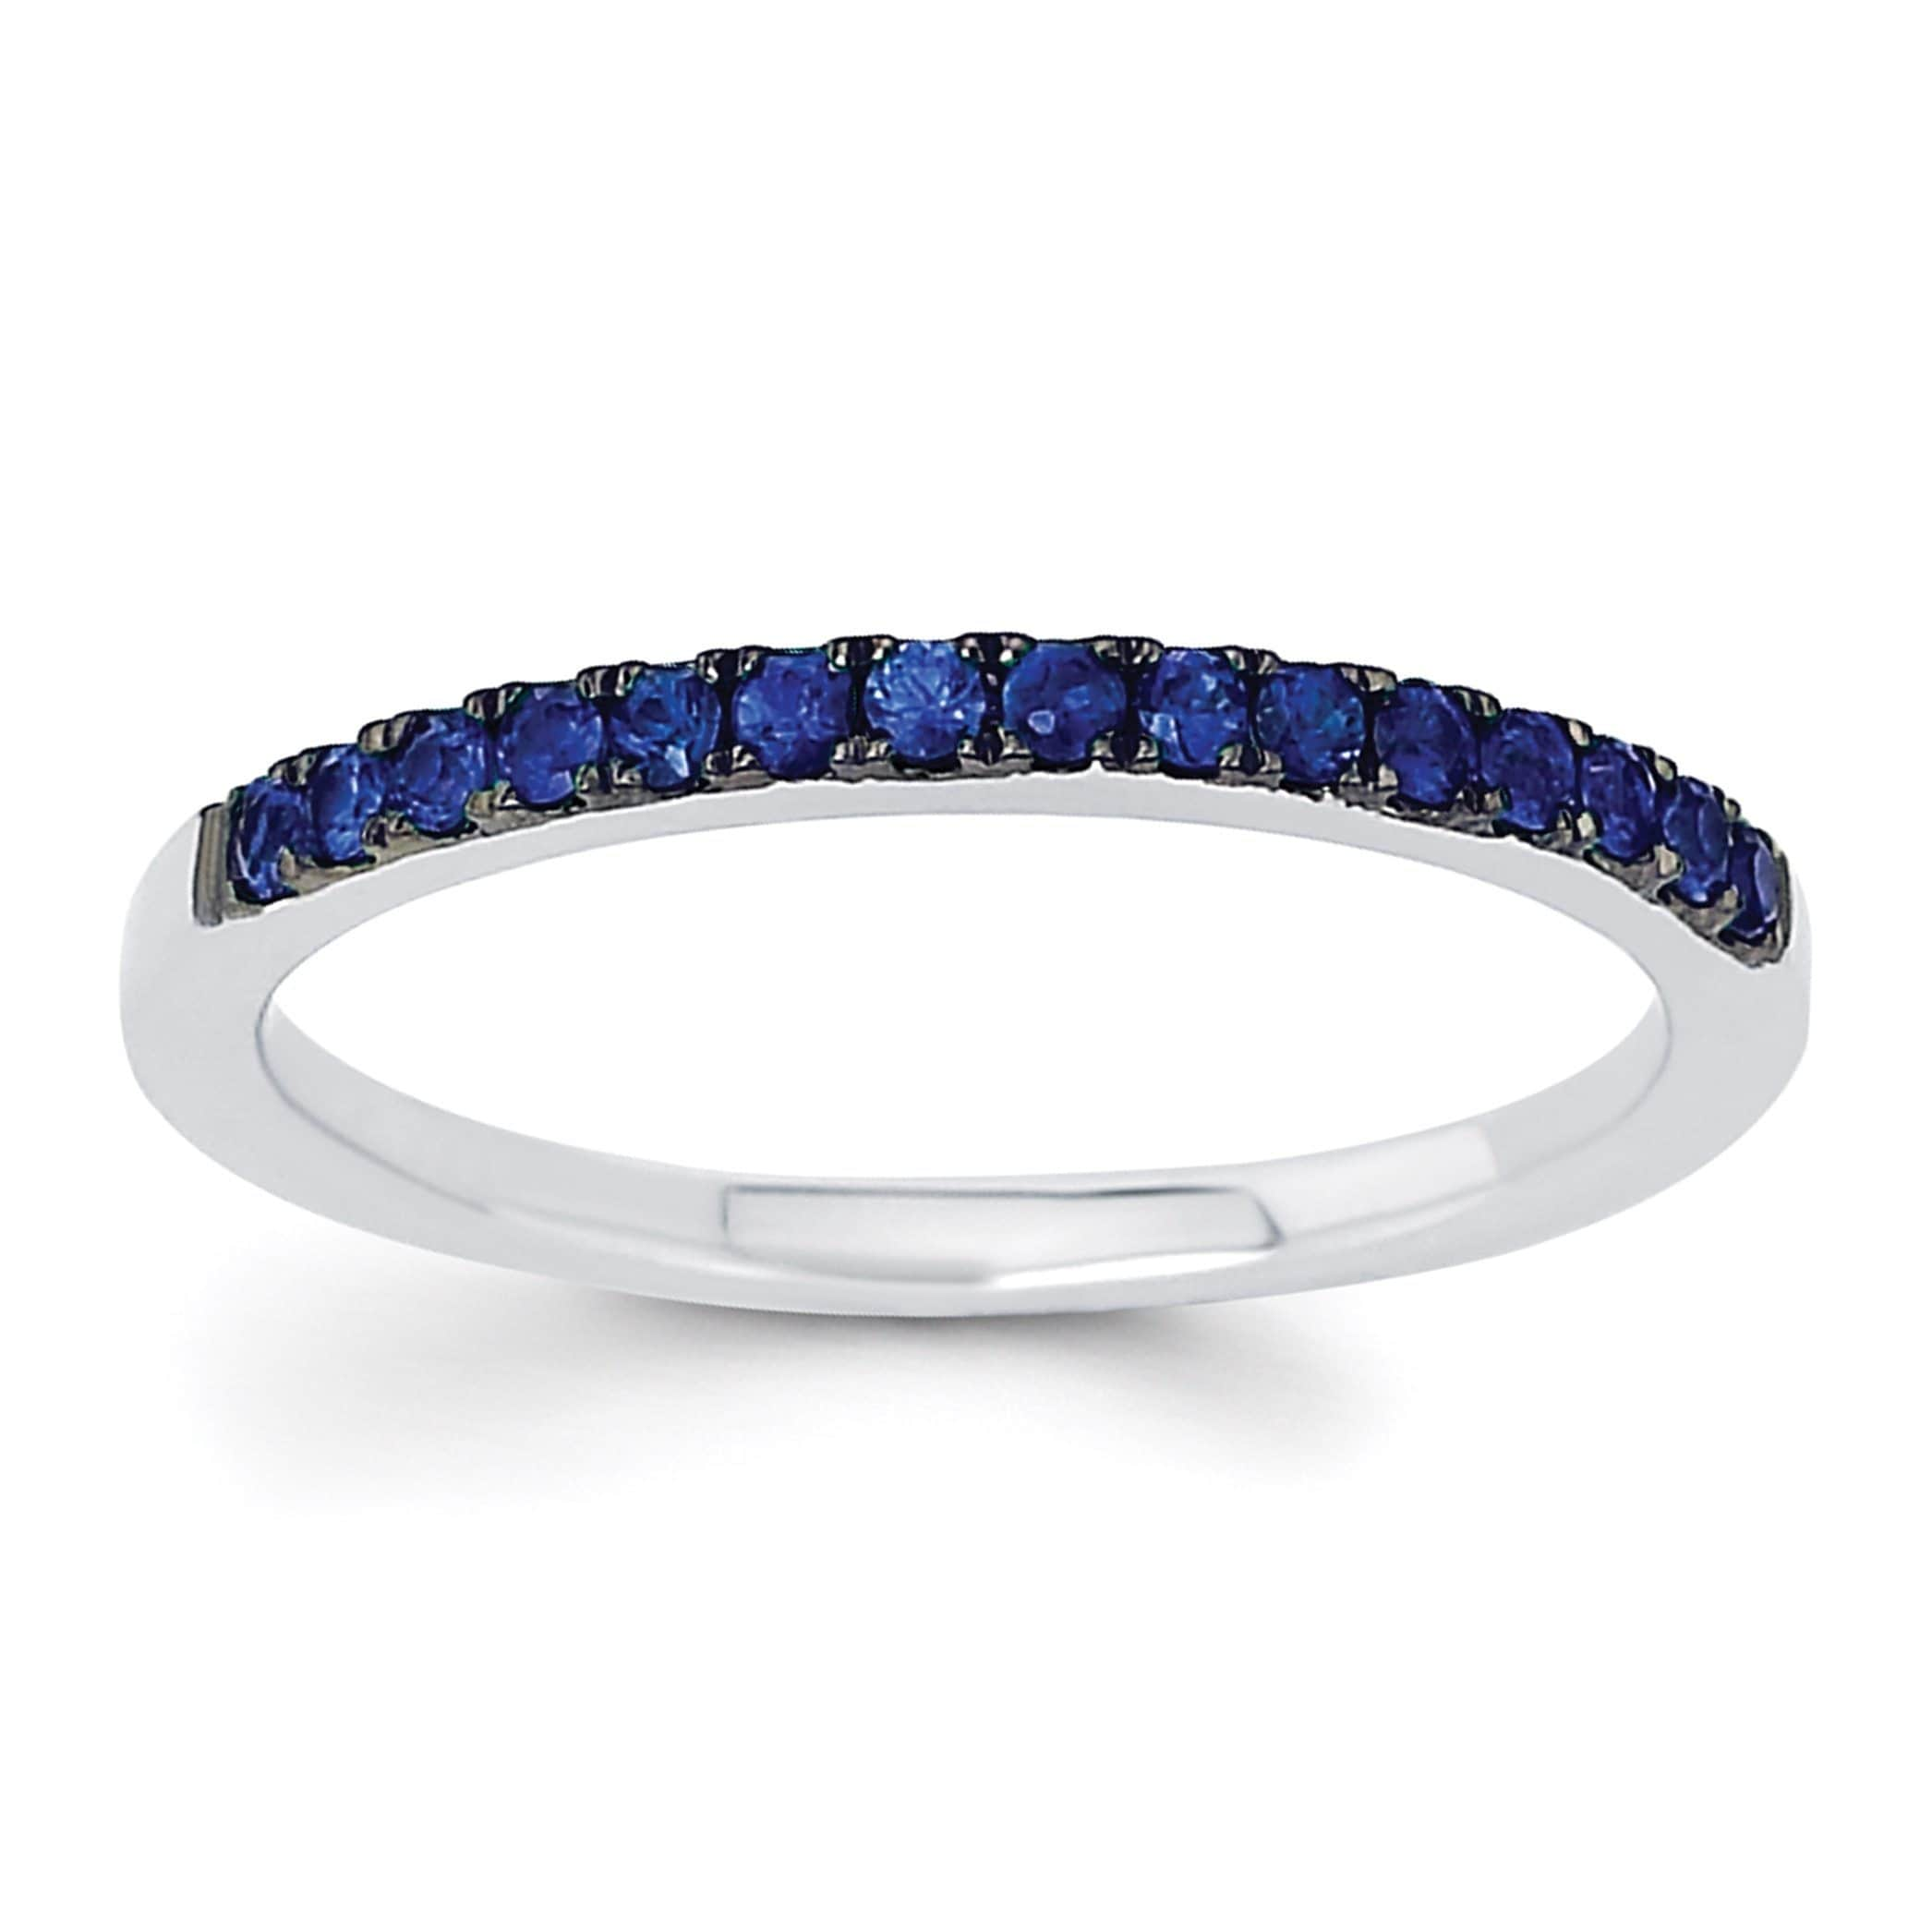 graff eternity a motif collections diamond band and for wave sapphires set bands gold with her white diamonds sapphire wedding